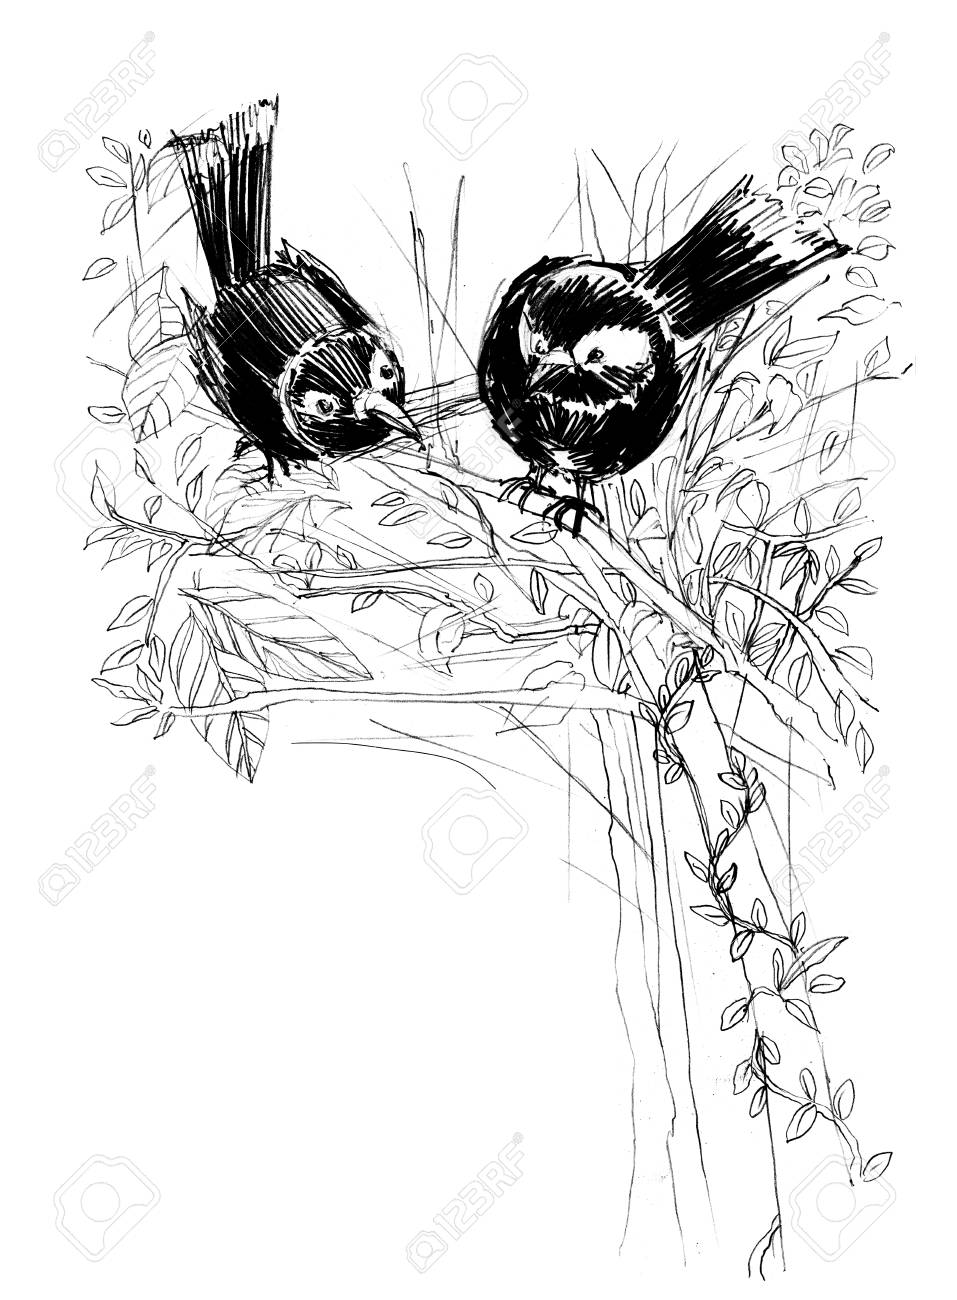 Magpie bird with love cute acting design pencil sketch from real life black and white color